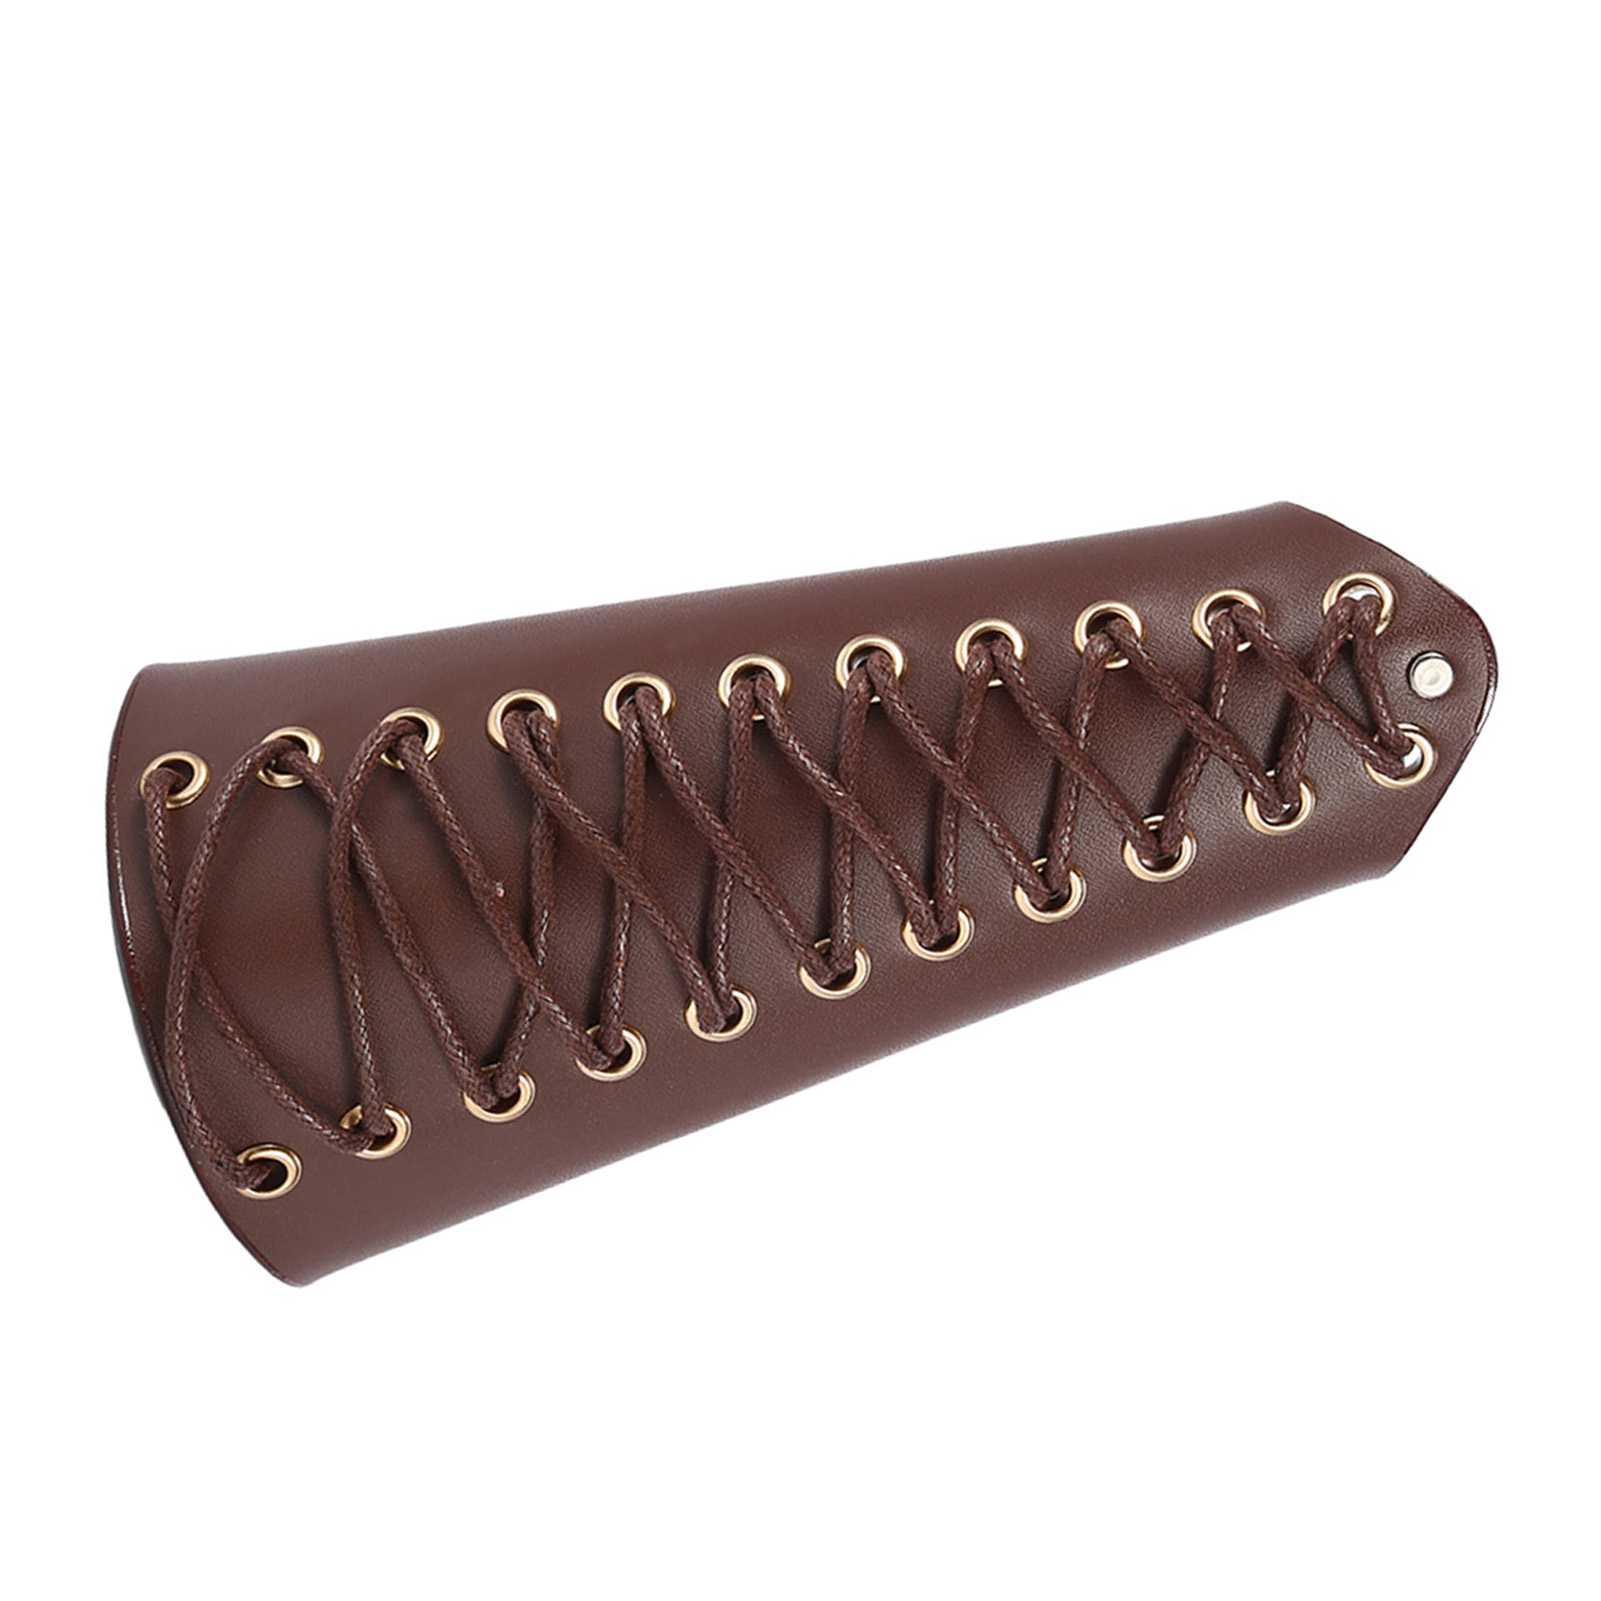 Unisex-Archery-Recurve-Bow-Arm-Guard-Traditional-Cow-Leather-Bracer-for-Longbow thumbnail 14